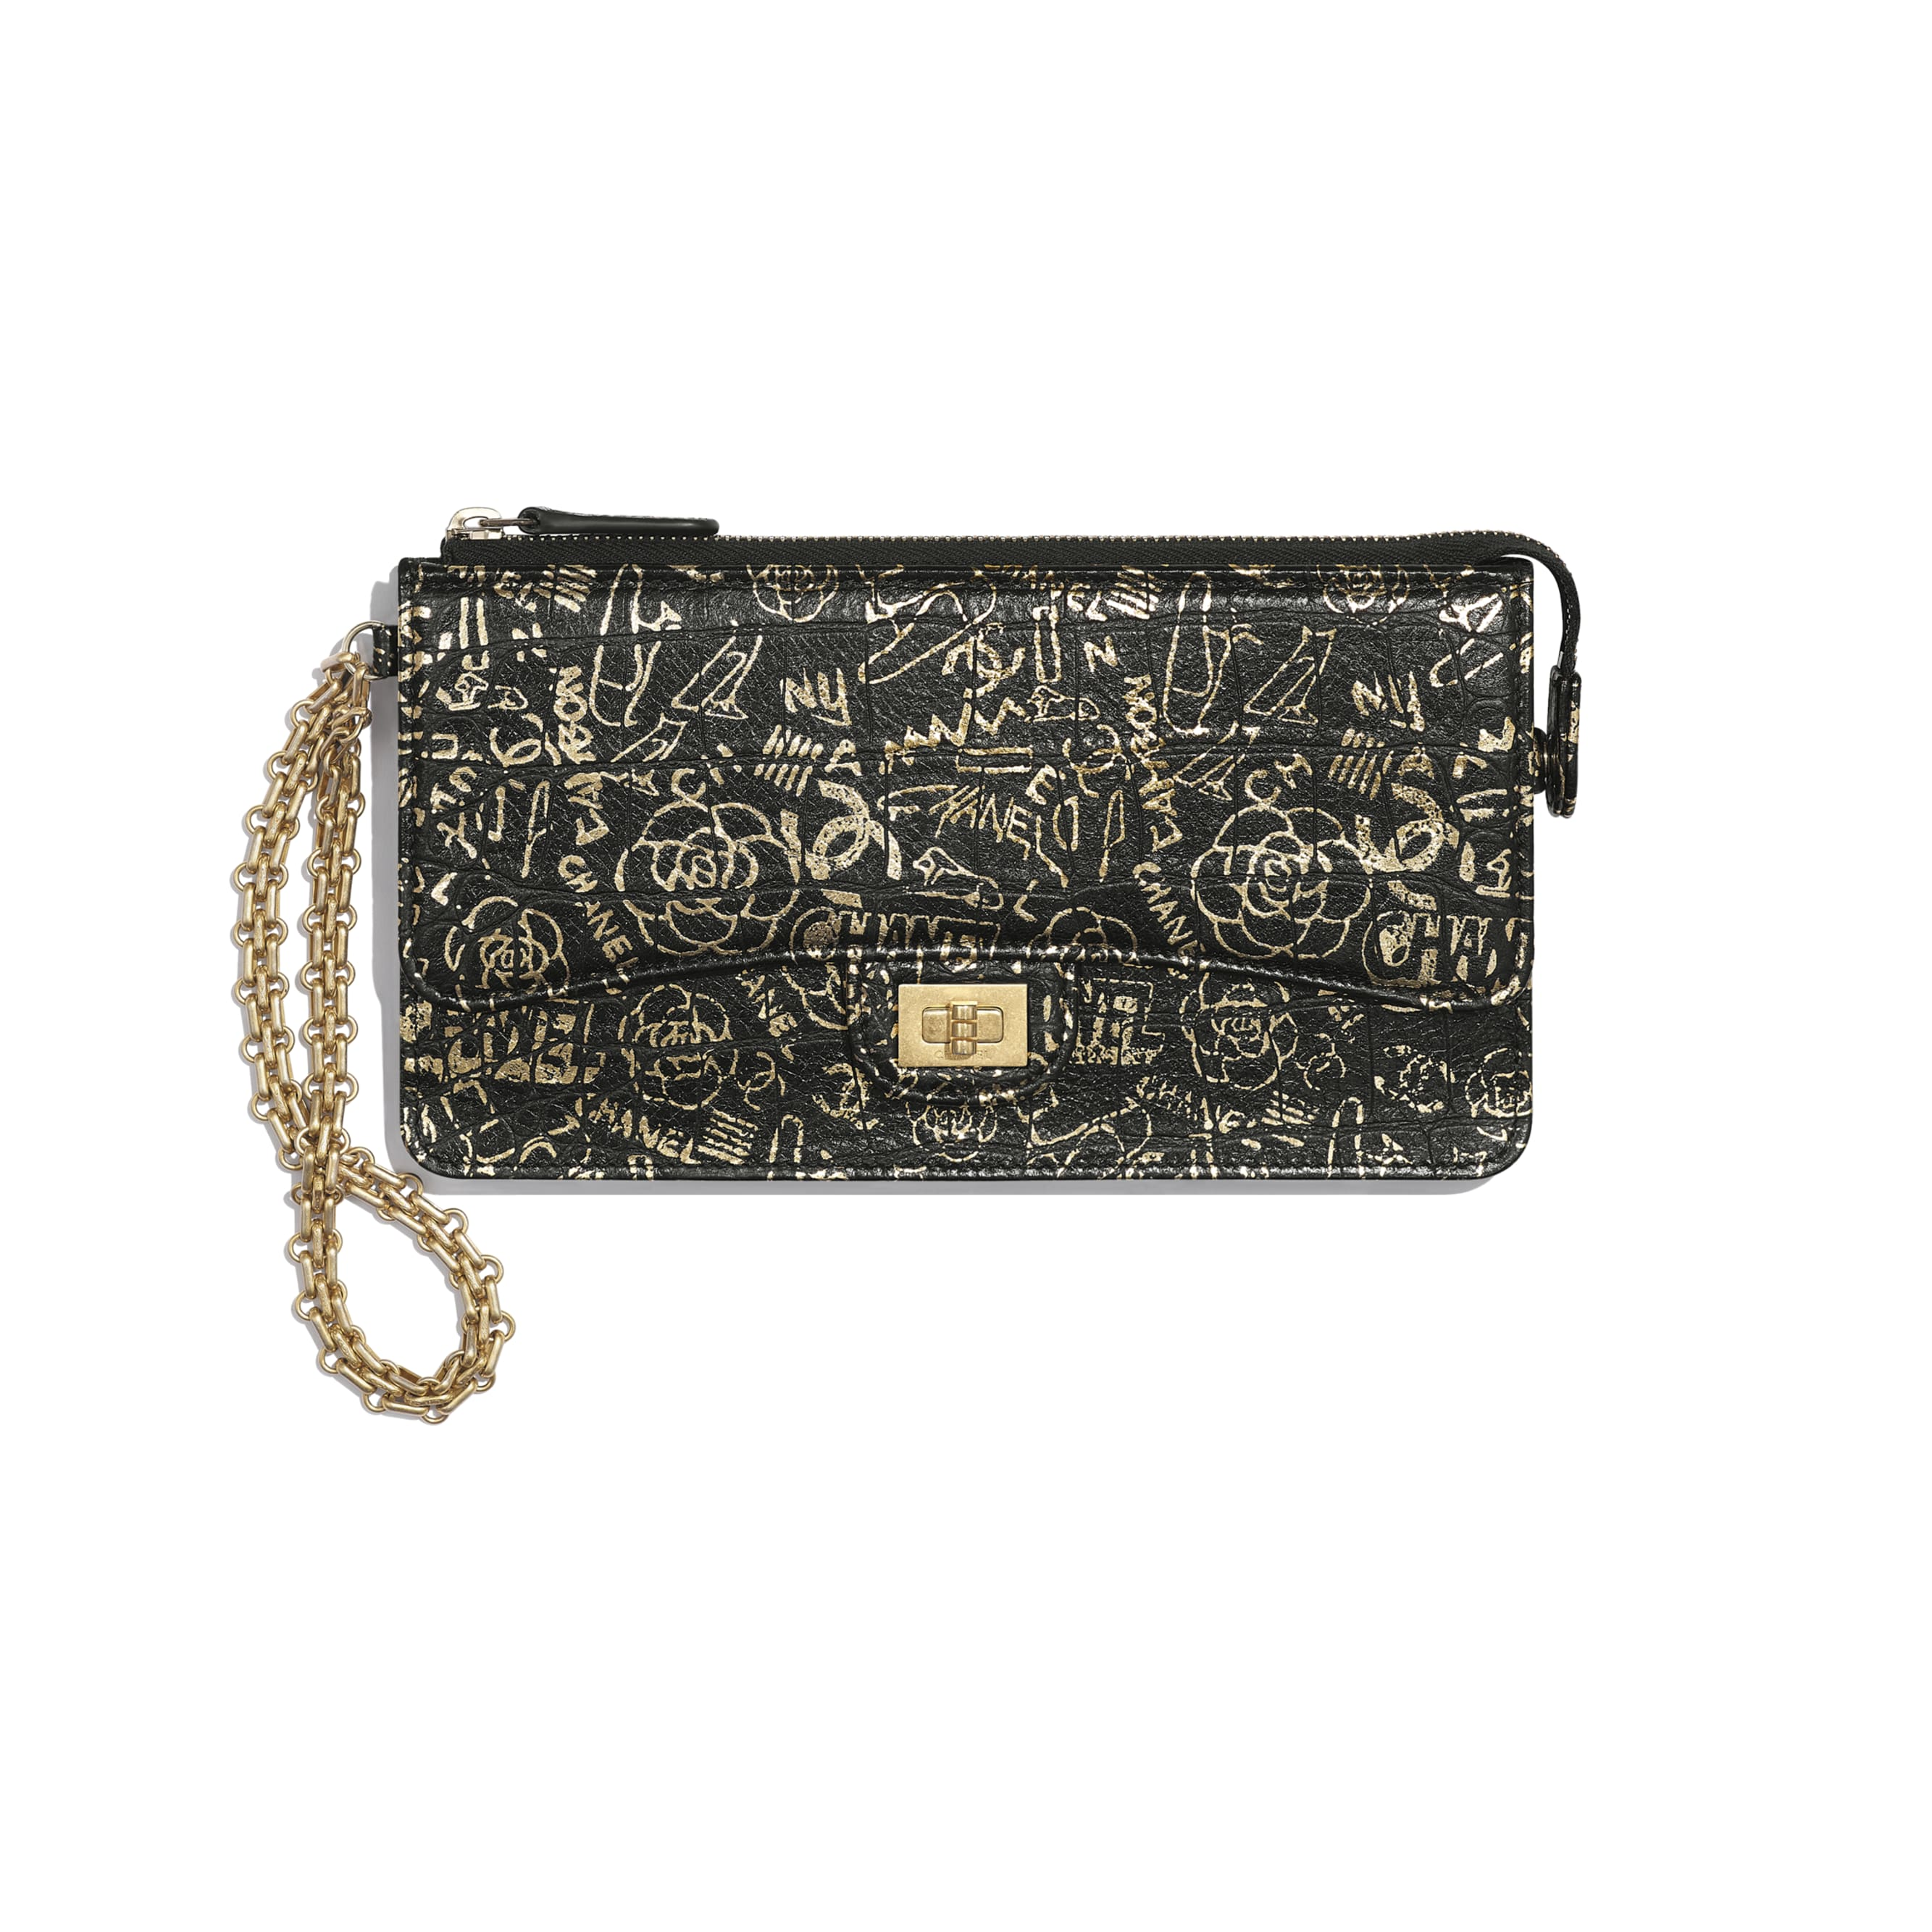 2.55 Pouch With Handle - Black & Gold - Crocodile Embossed Printed Leather & Gold-Tone Metal - Default view - see standard sized version